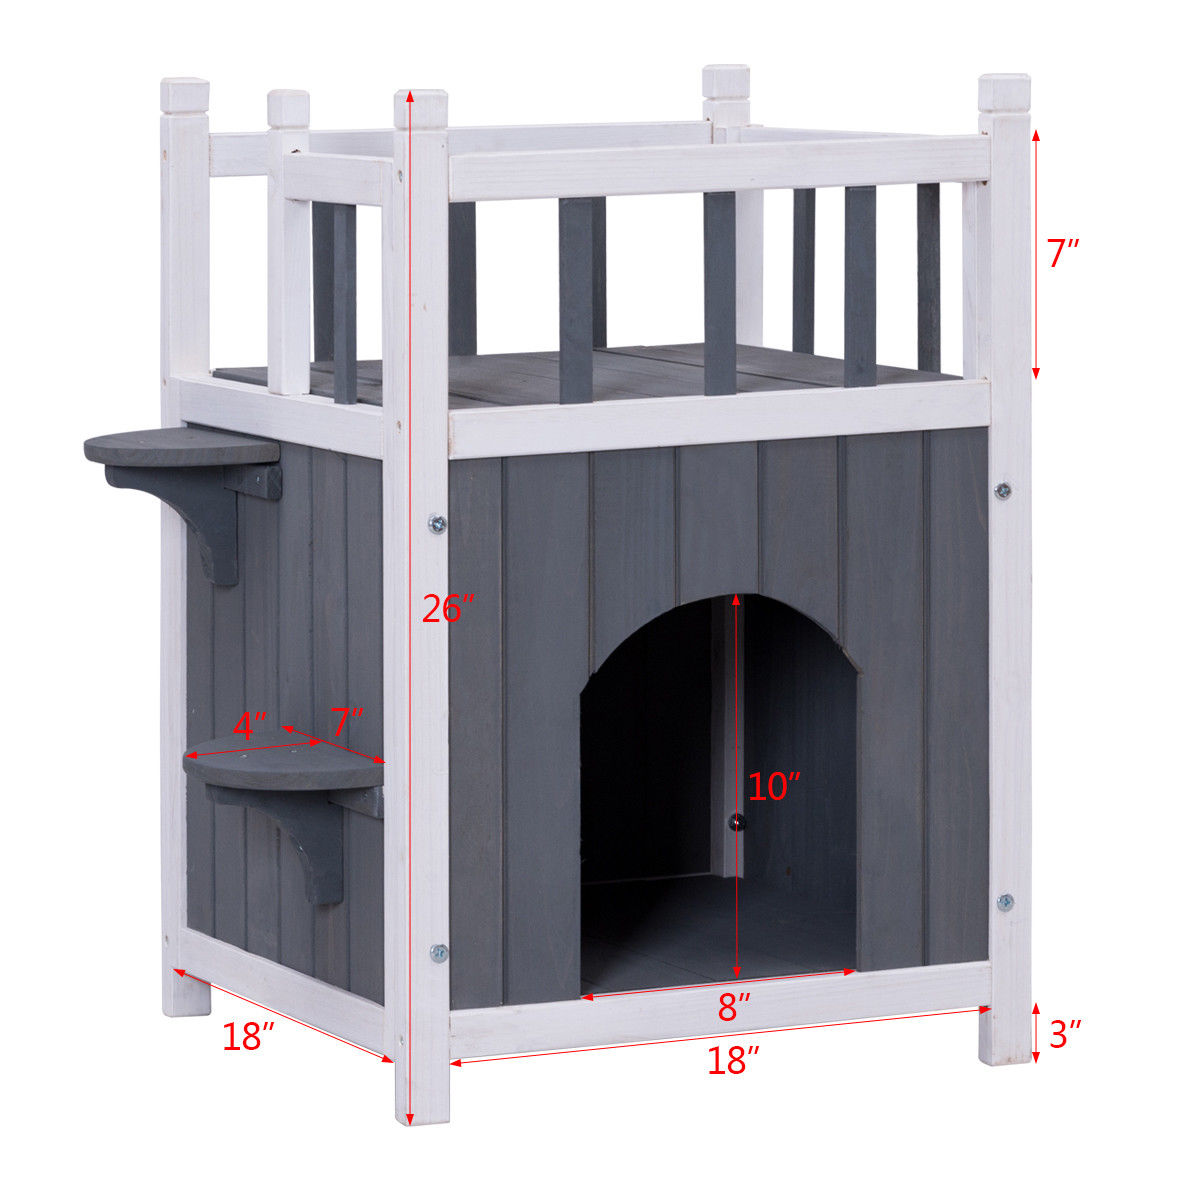 Gymax Wooden Cat Pet Home with Balcony Pet House Small Dog Indoor Outdoor Shelter - image 3 de 9